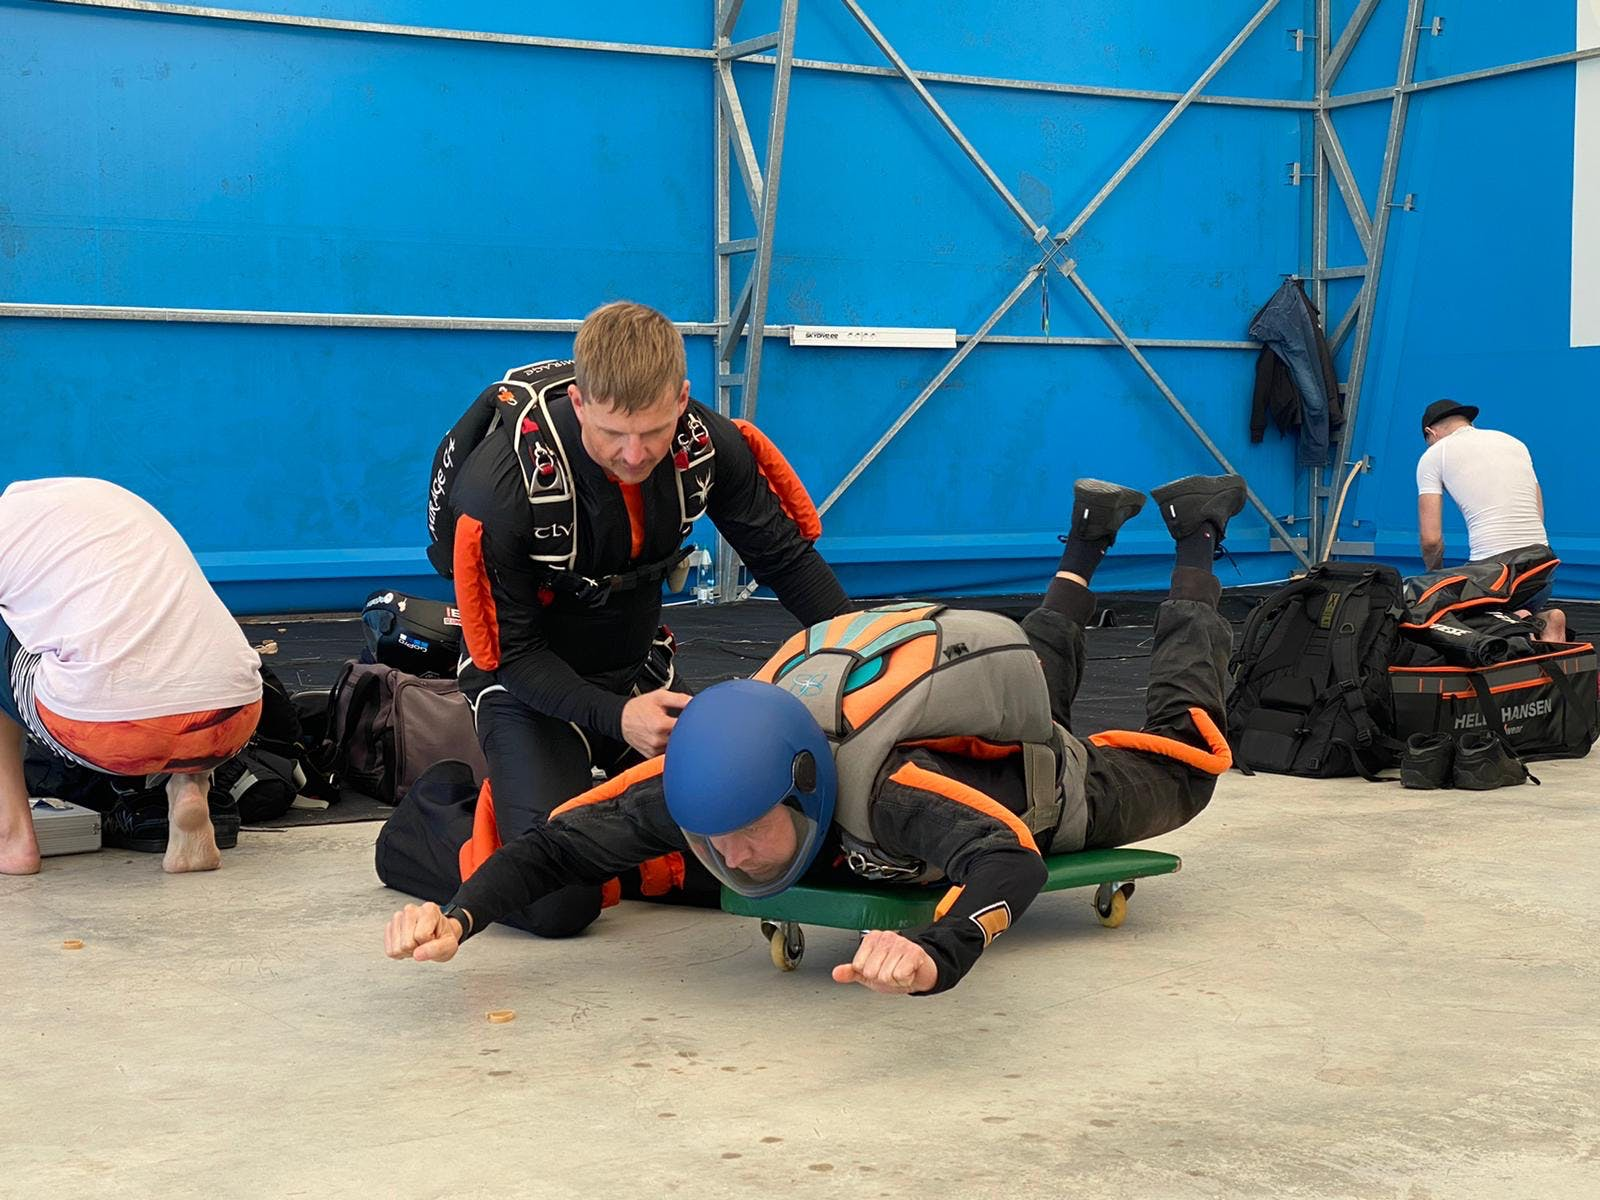 Roman gearing up for a skydive.